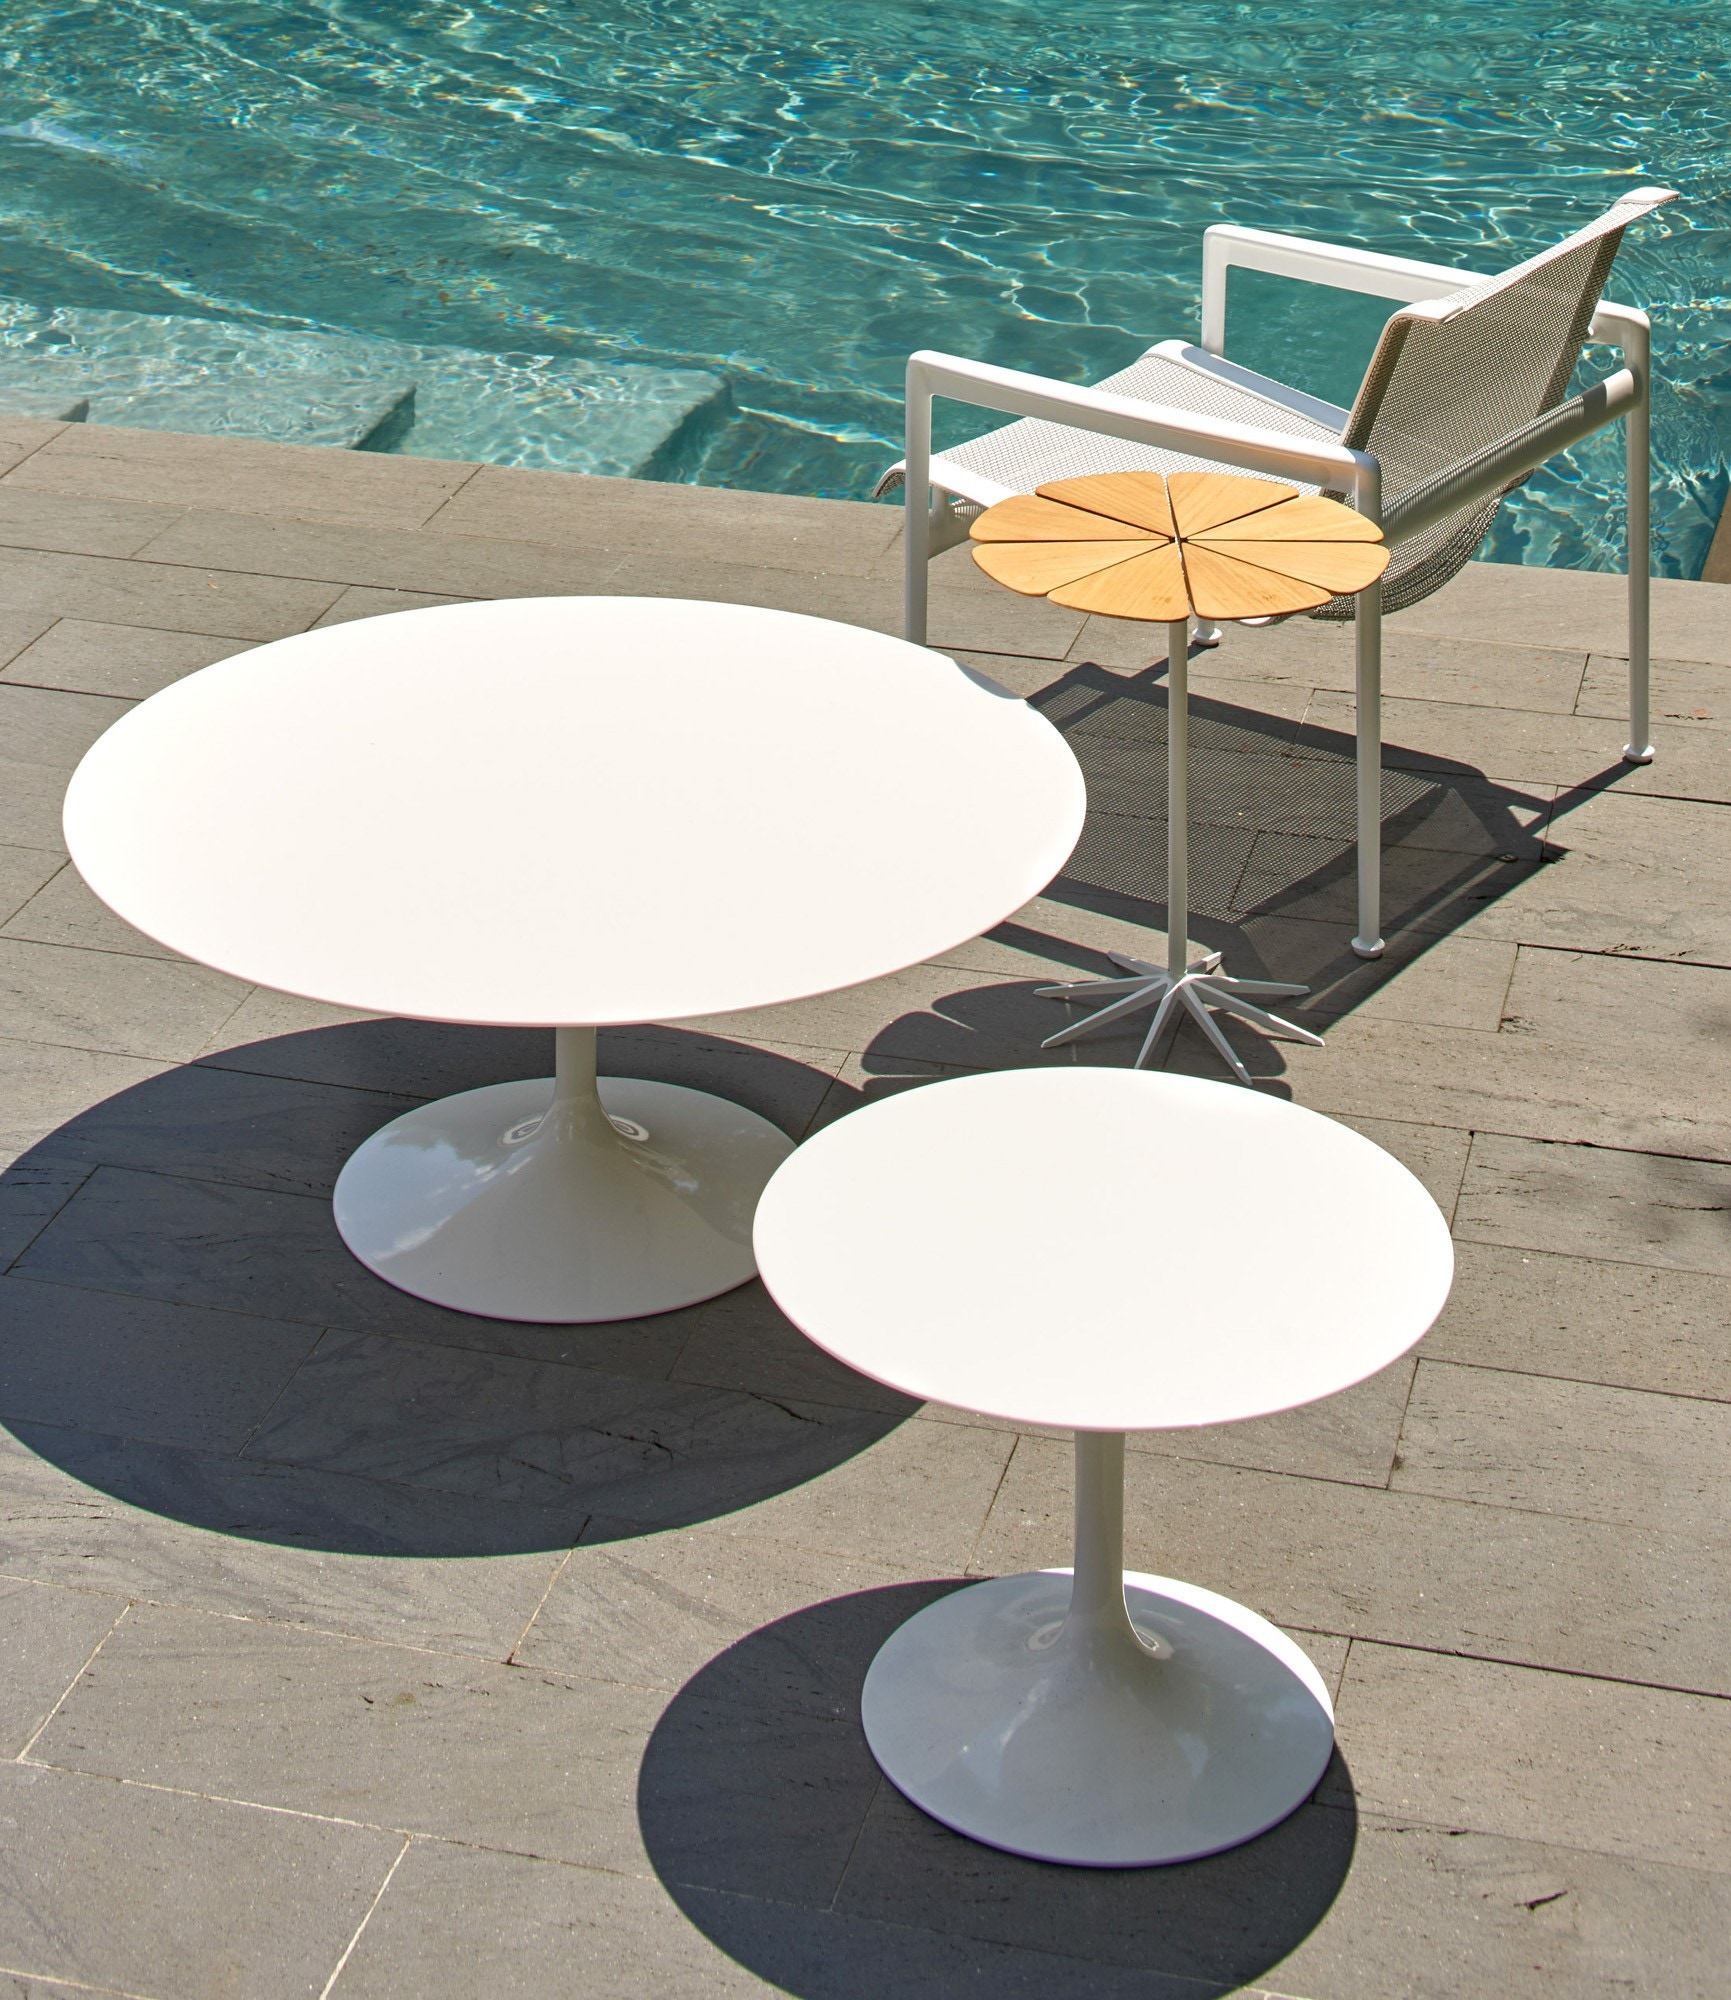 Knoll Saarinen Round Coffee Table Outdoor Modern Planet